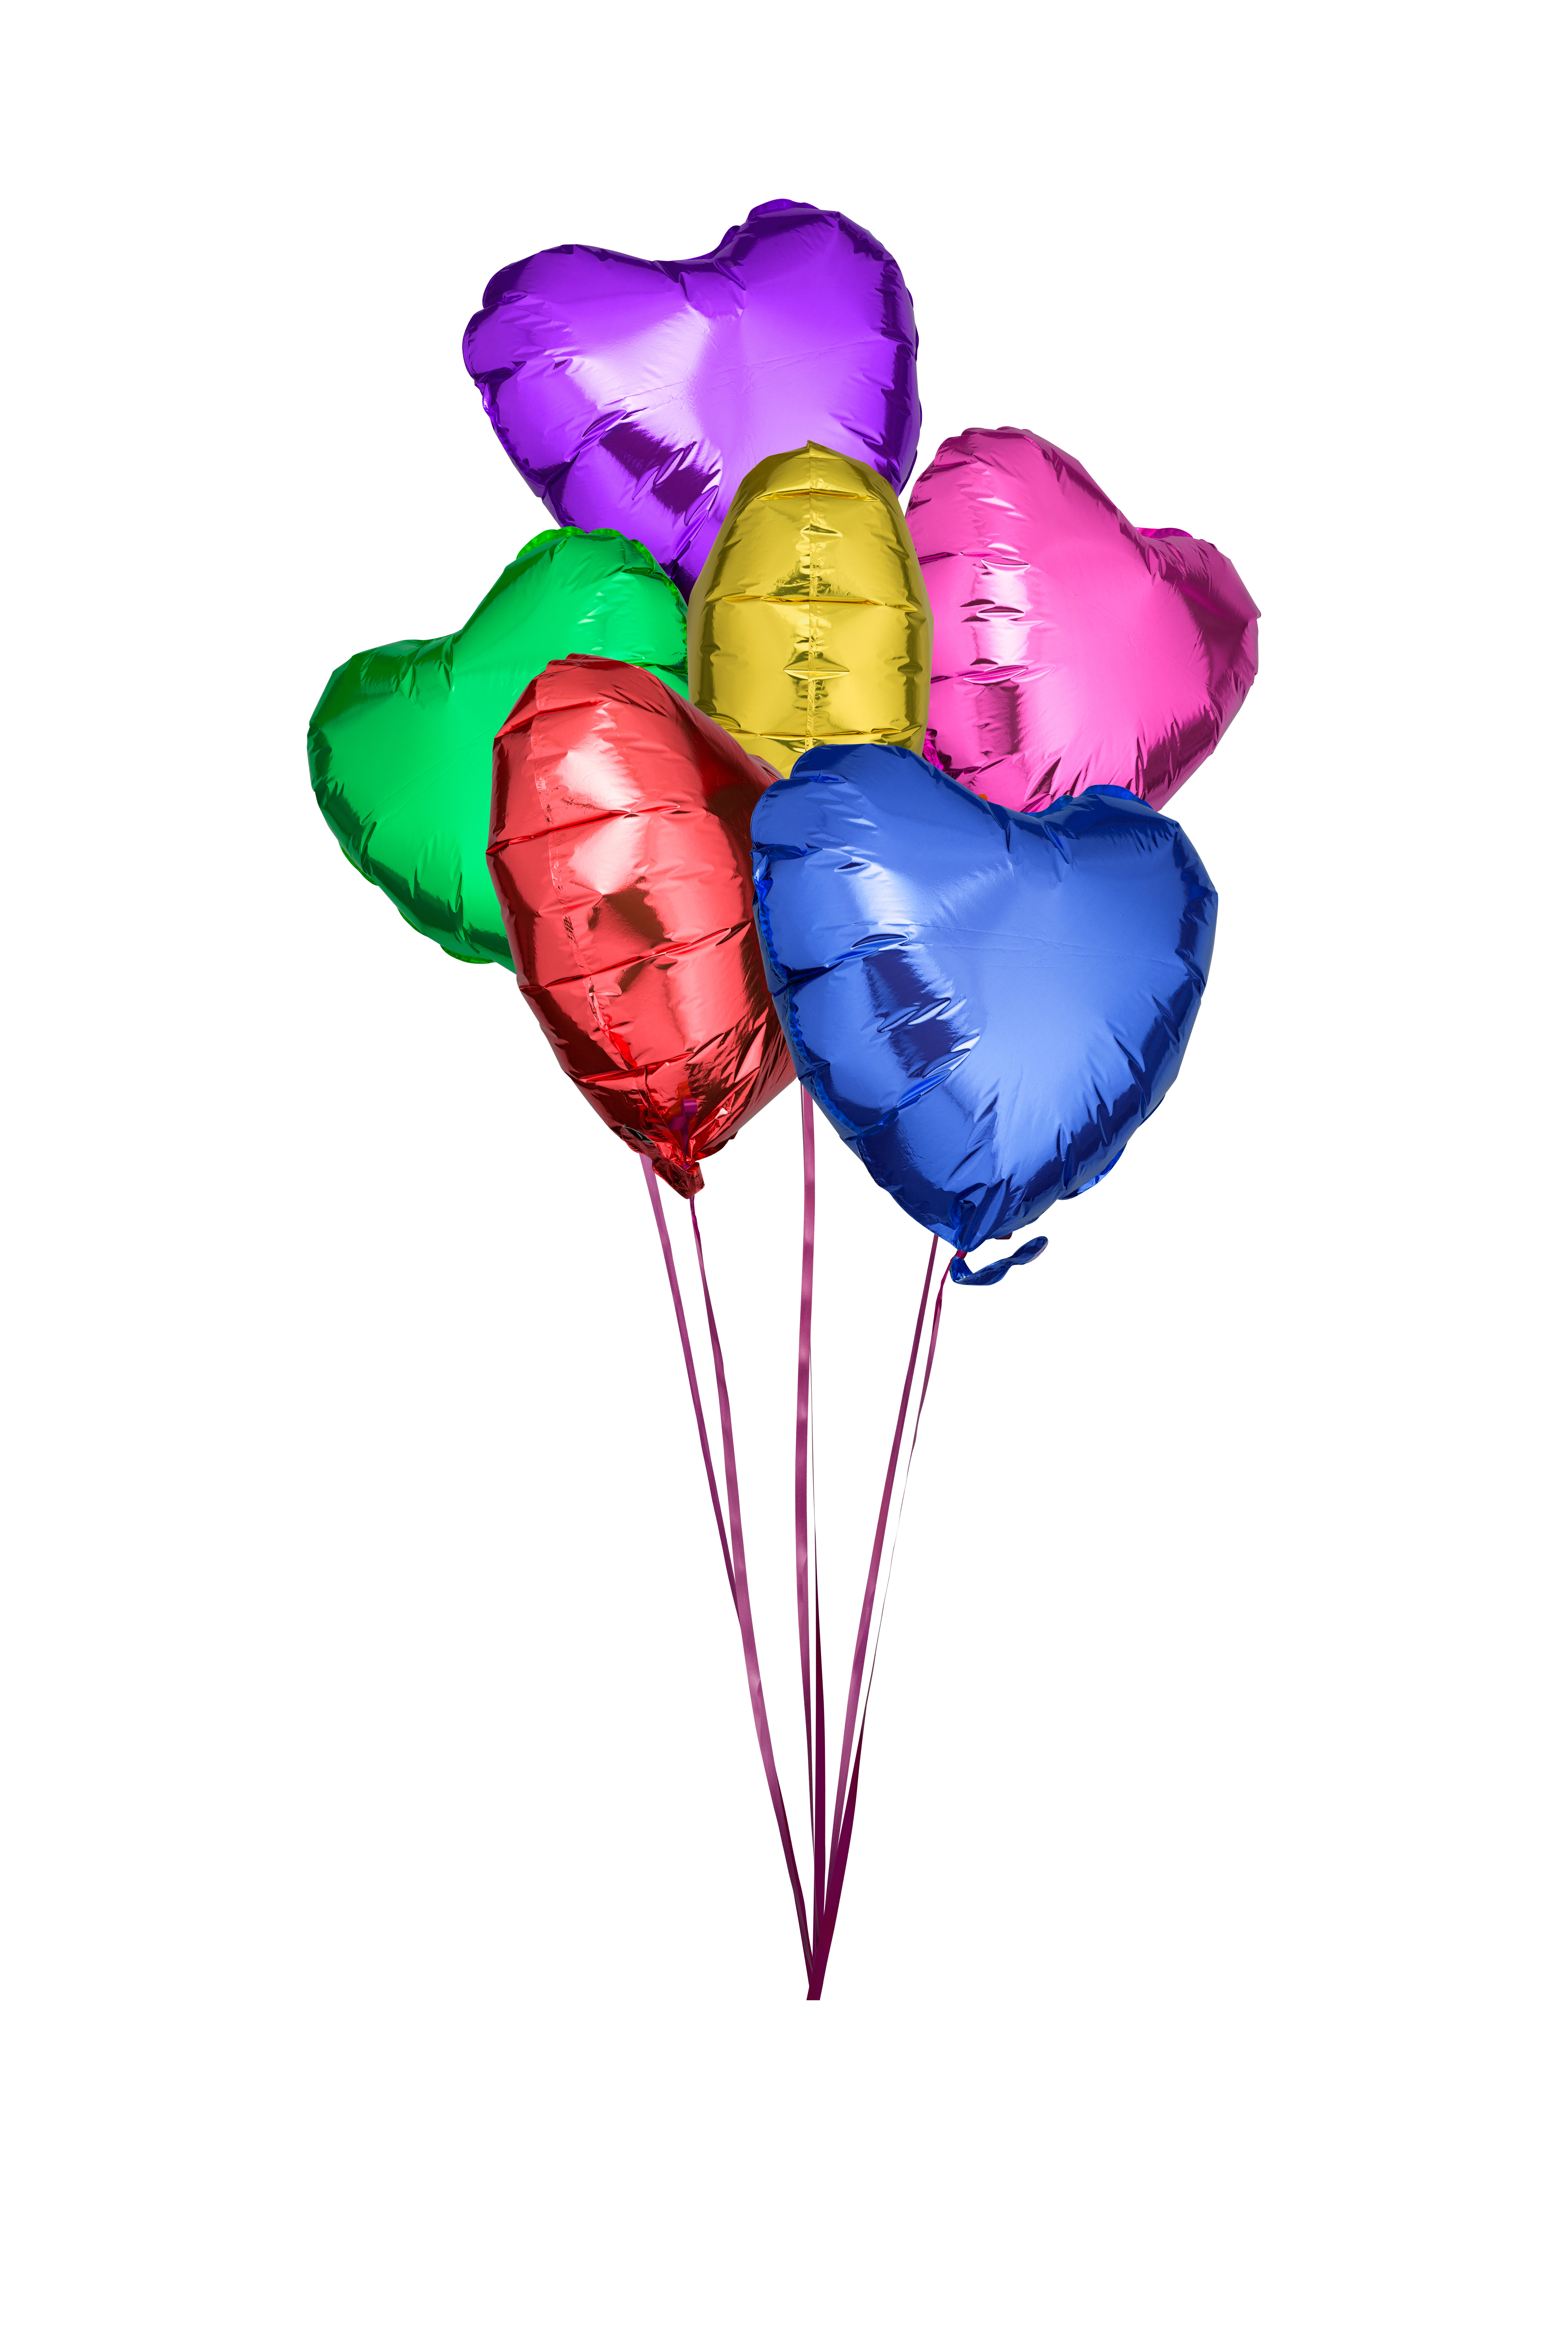 some colorful balloons